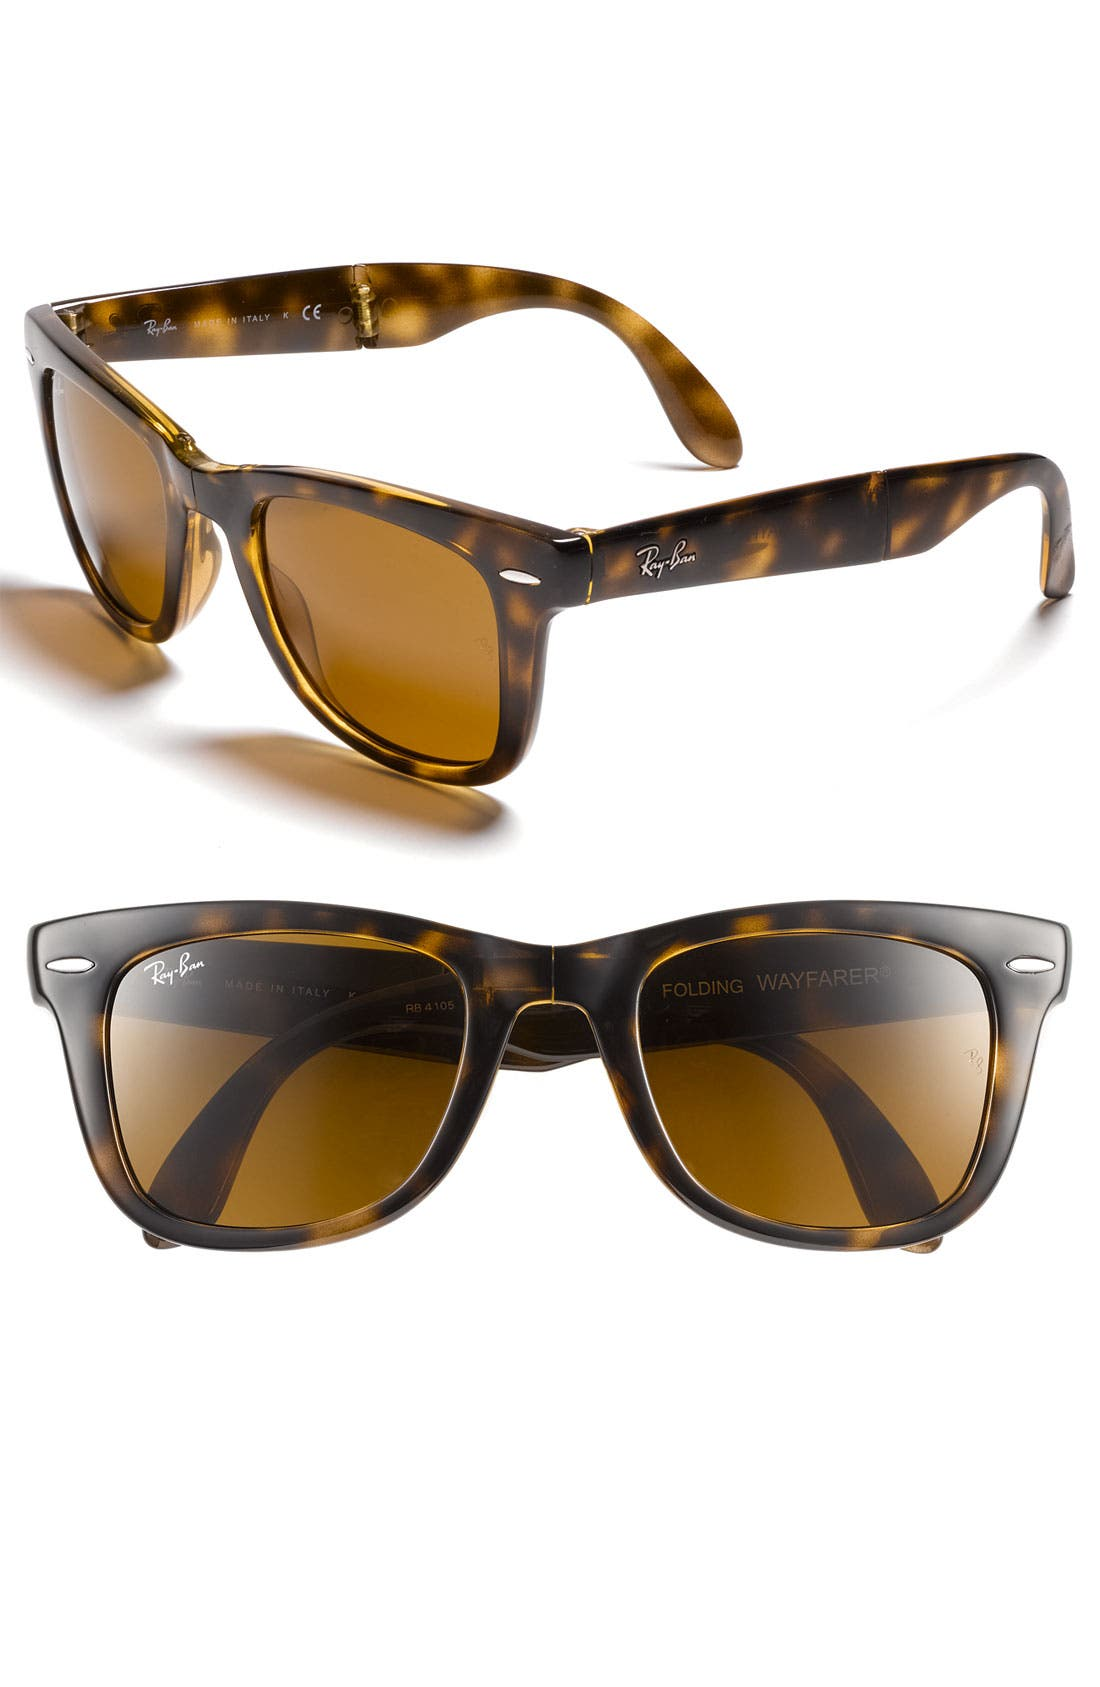 Main Image - Ray-Ban Standard 50mm Folding Wayfarer Sunglasses